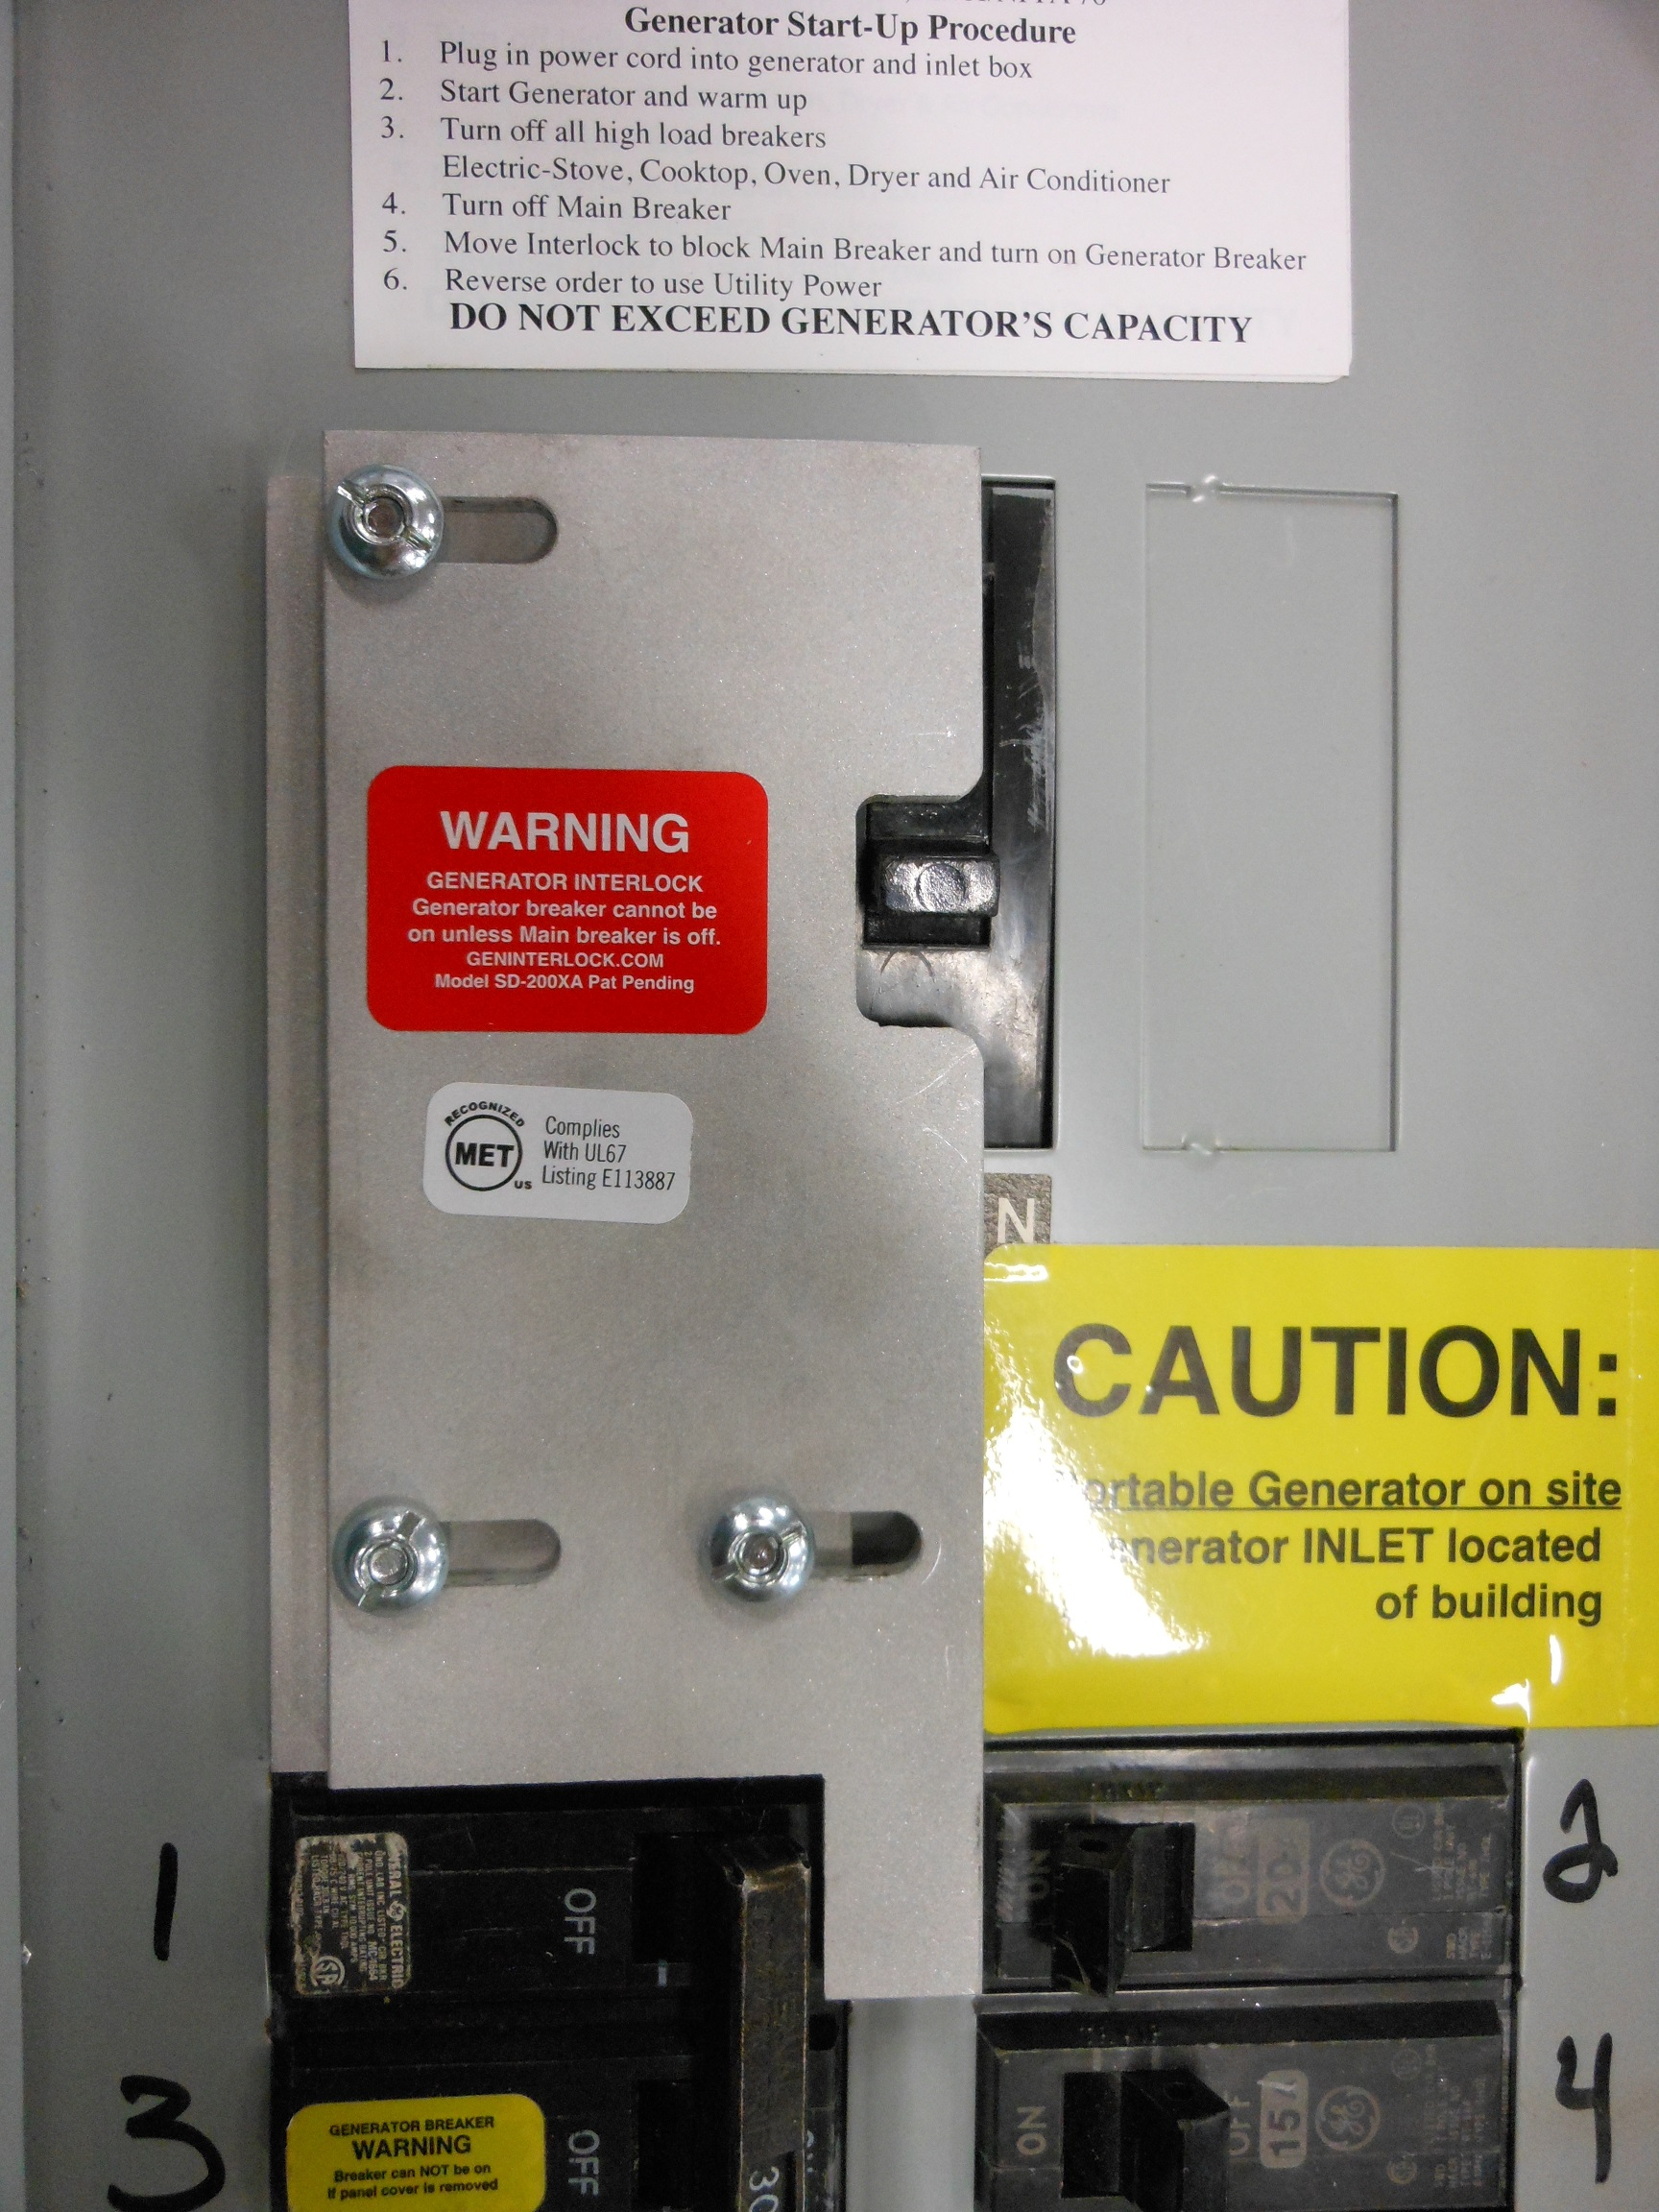 S13 Fuse Box Labels Wiring Library Electrical For Dryer Older Boxes